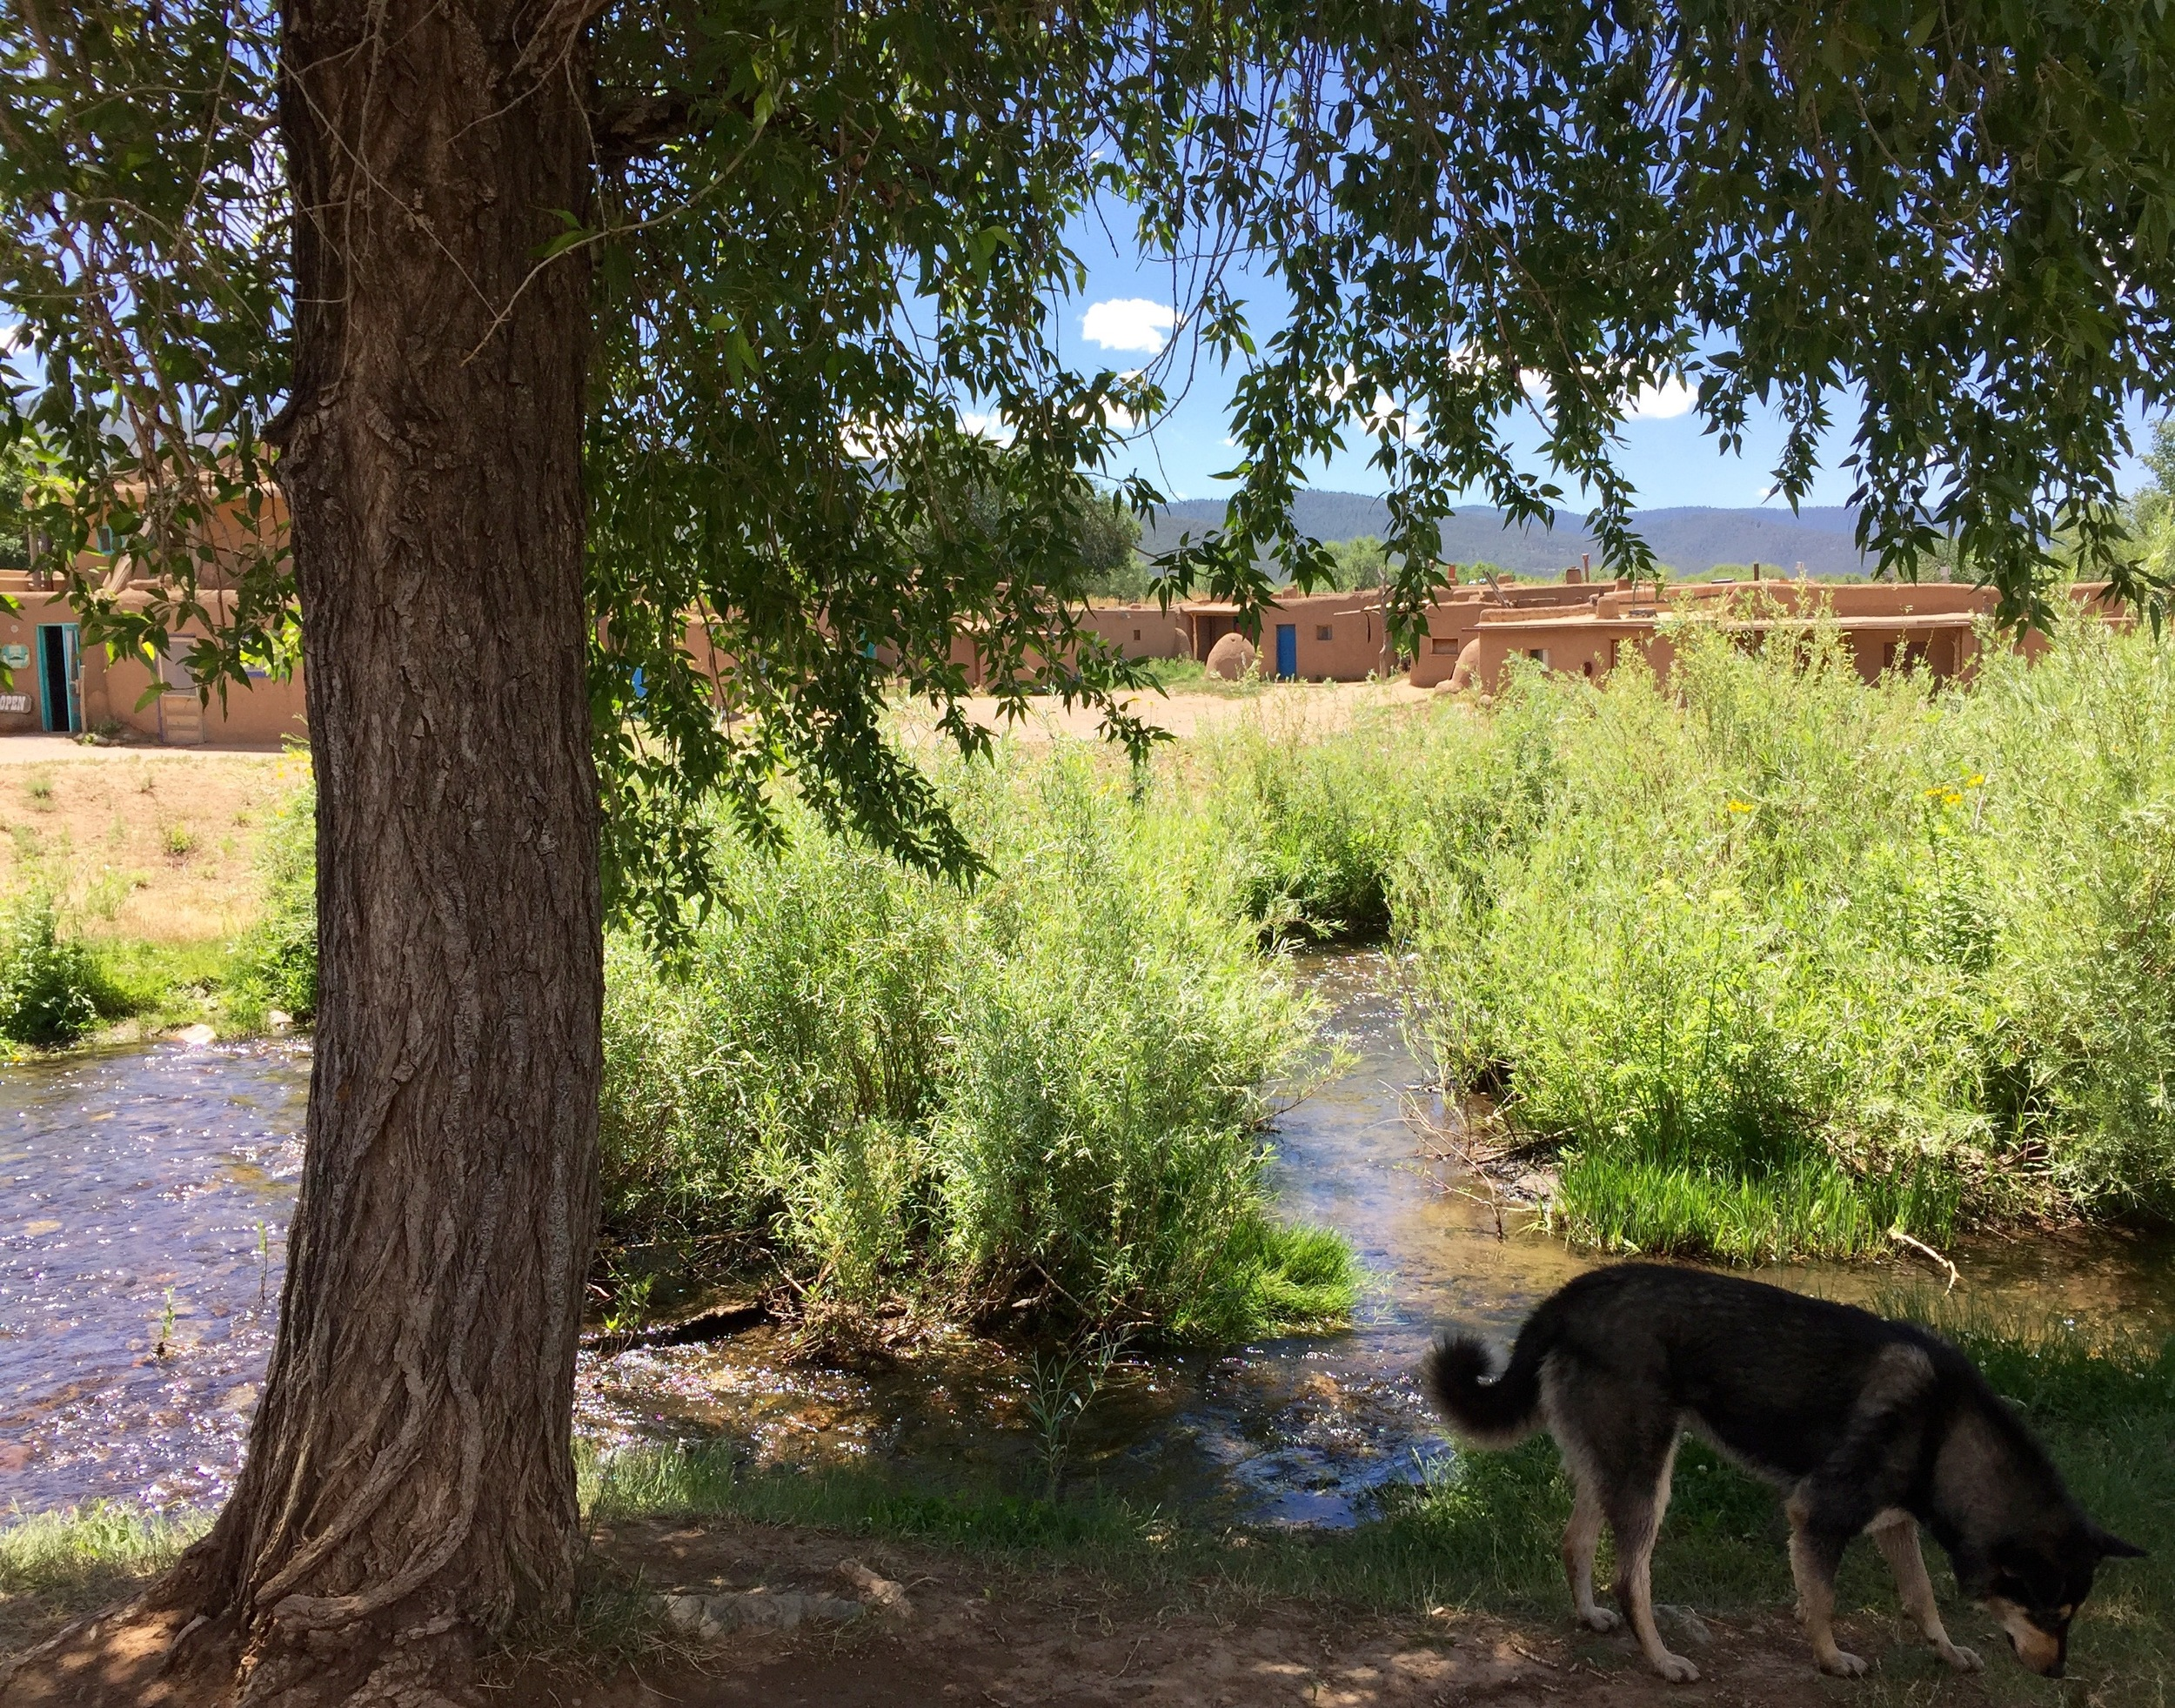 There are many dogs who live in the historic Pueblo, and are totally friendly and at home.